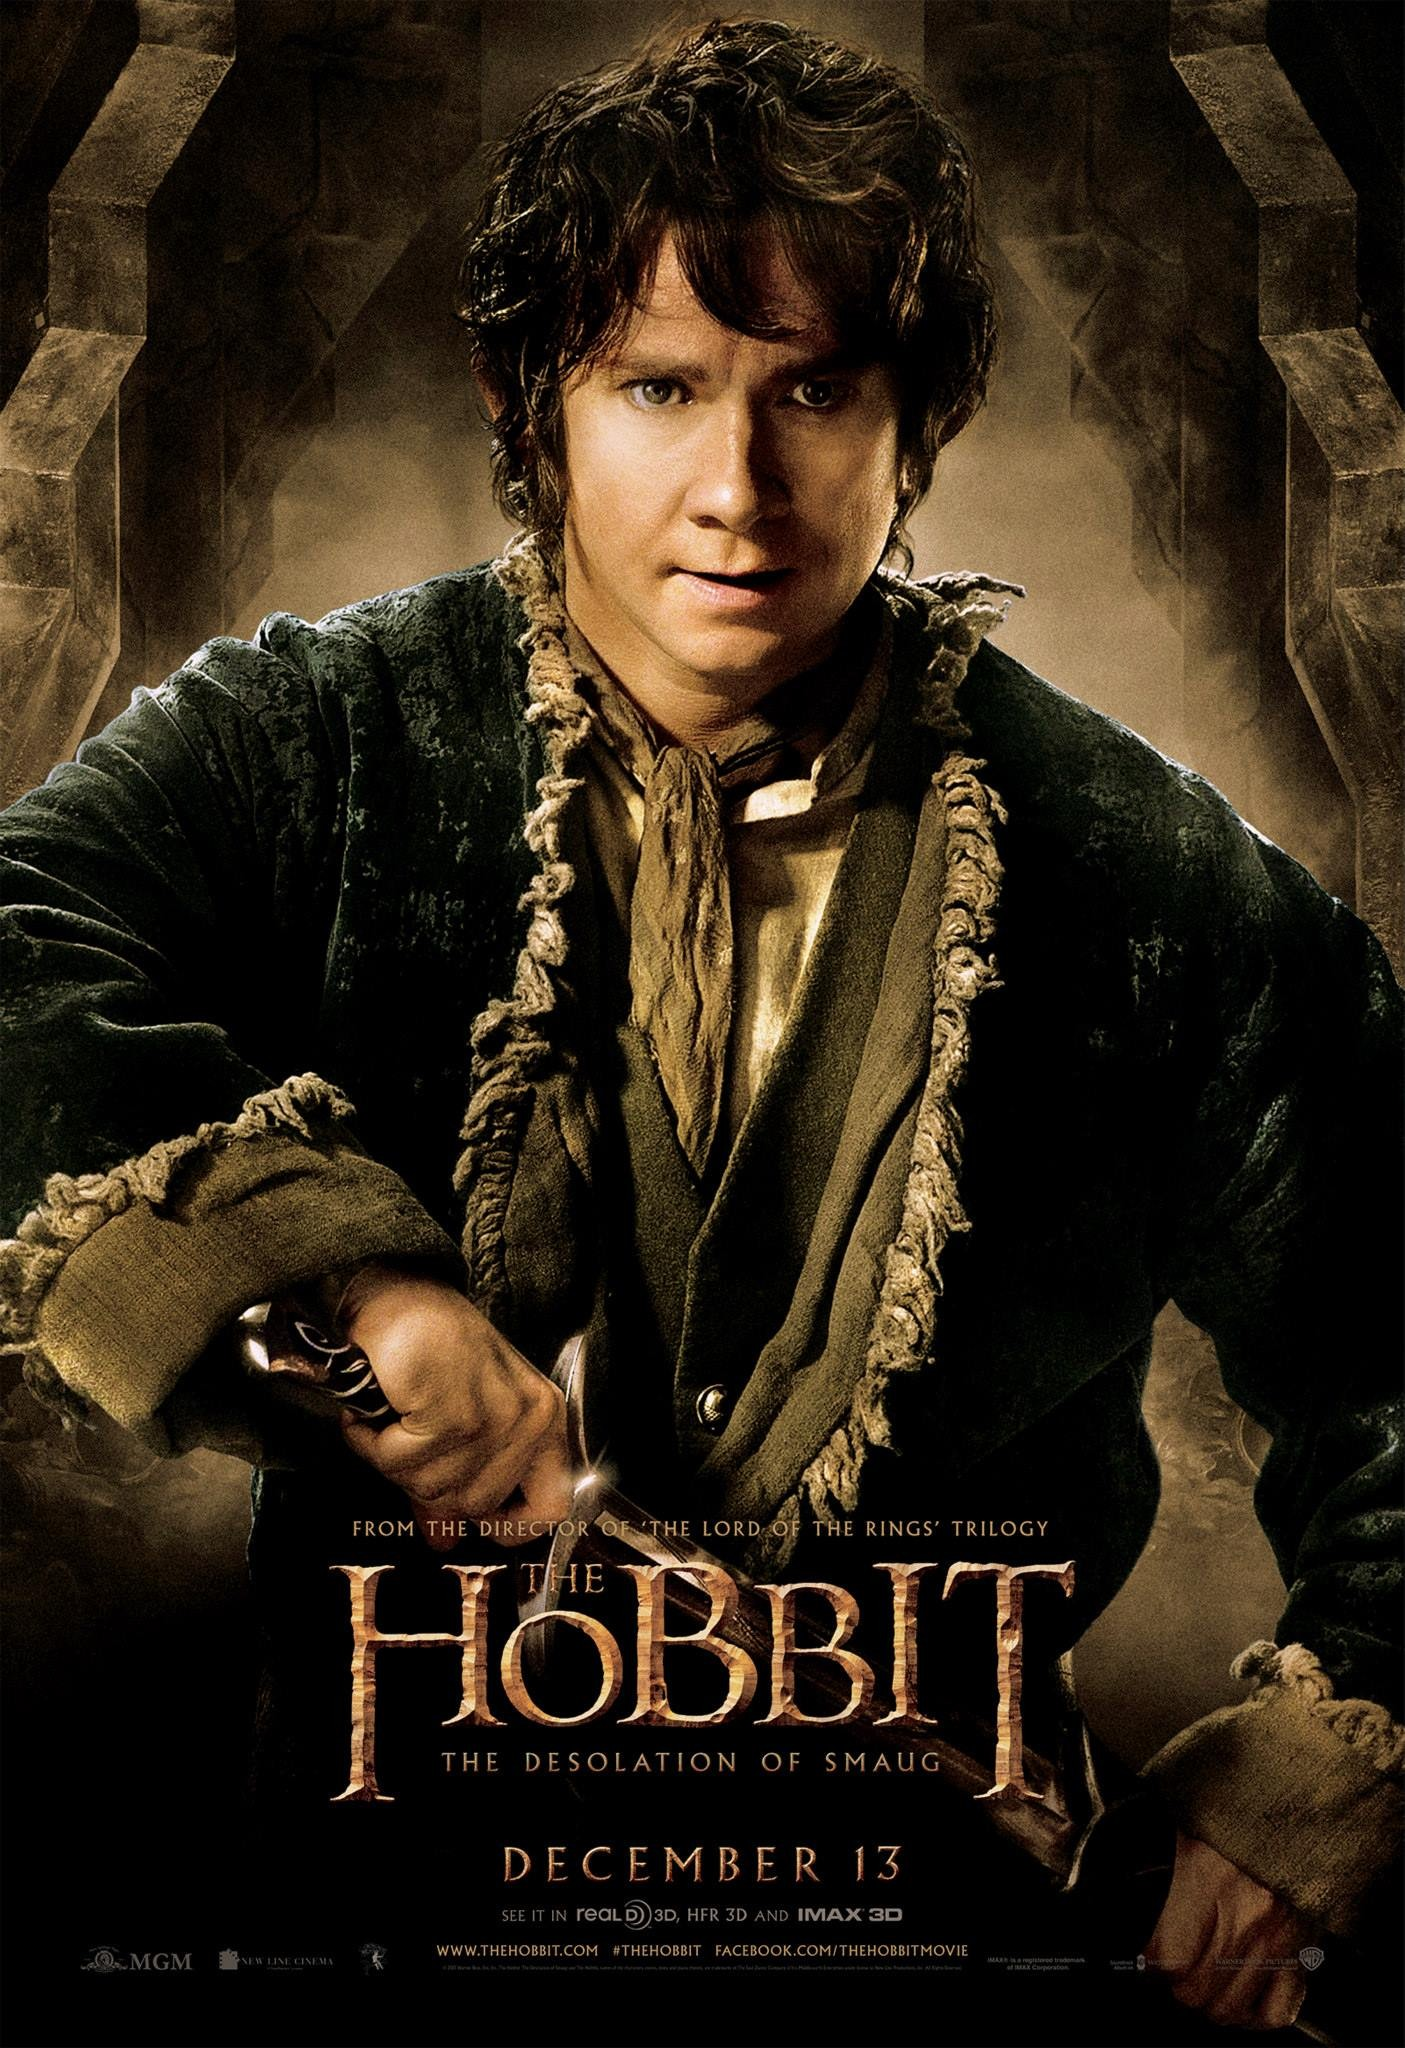 The Hobbit The Desolation of Smaug-Official Poster Banner PROMO POSTER XXLG-04NOVEMBRO2013-01